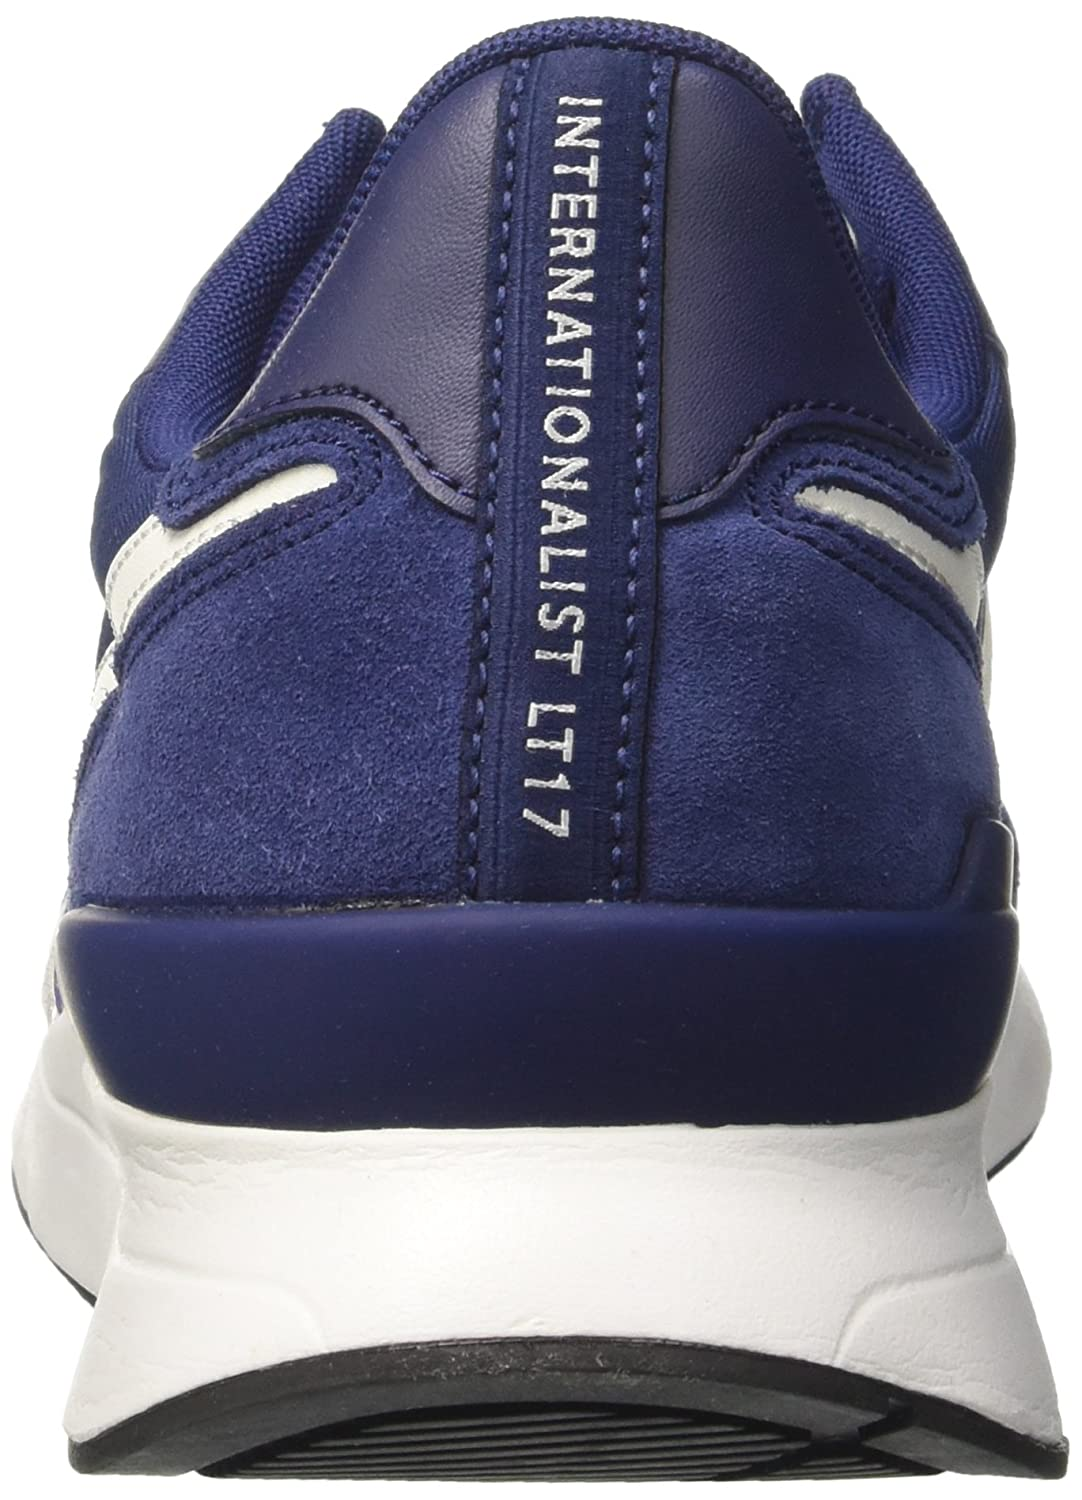 2c321b1bdda Nike Men's Internationalist Lt17 Training Shoes: Amazon.co.uk: Shoes & Bags